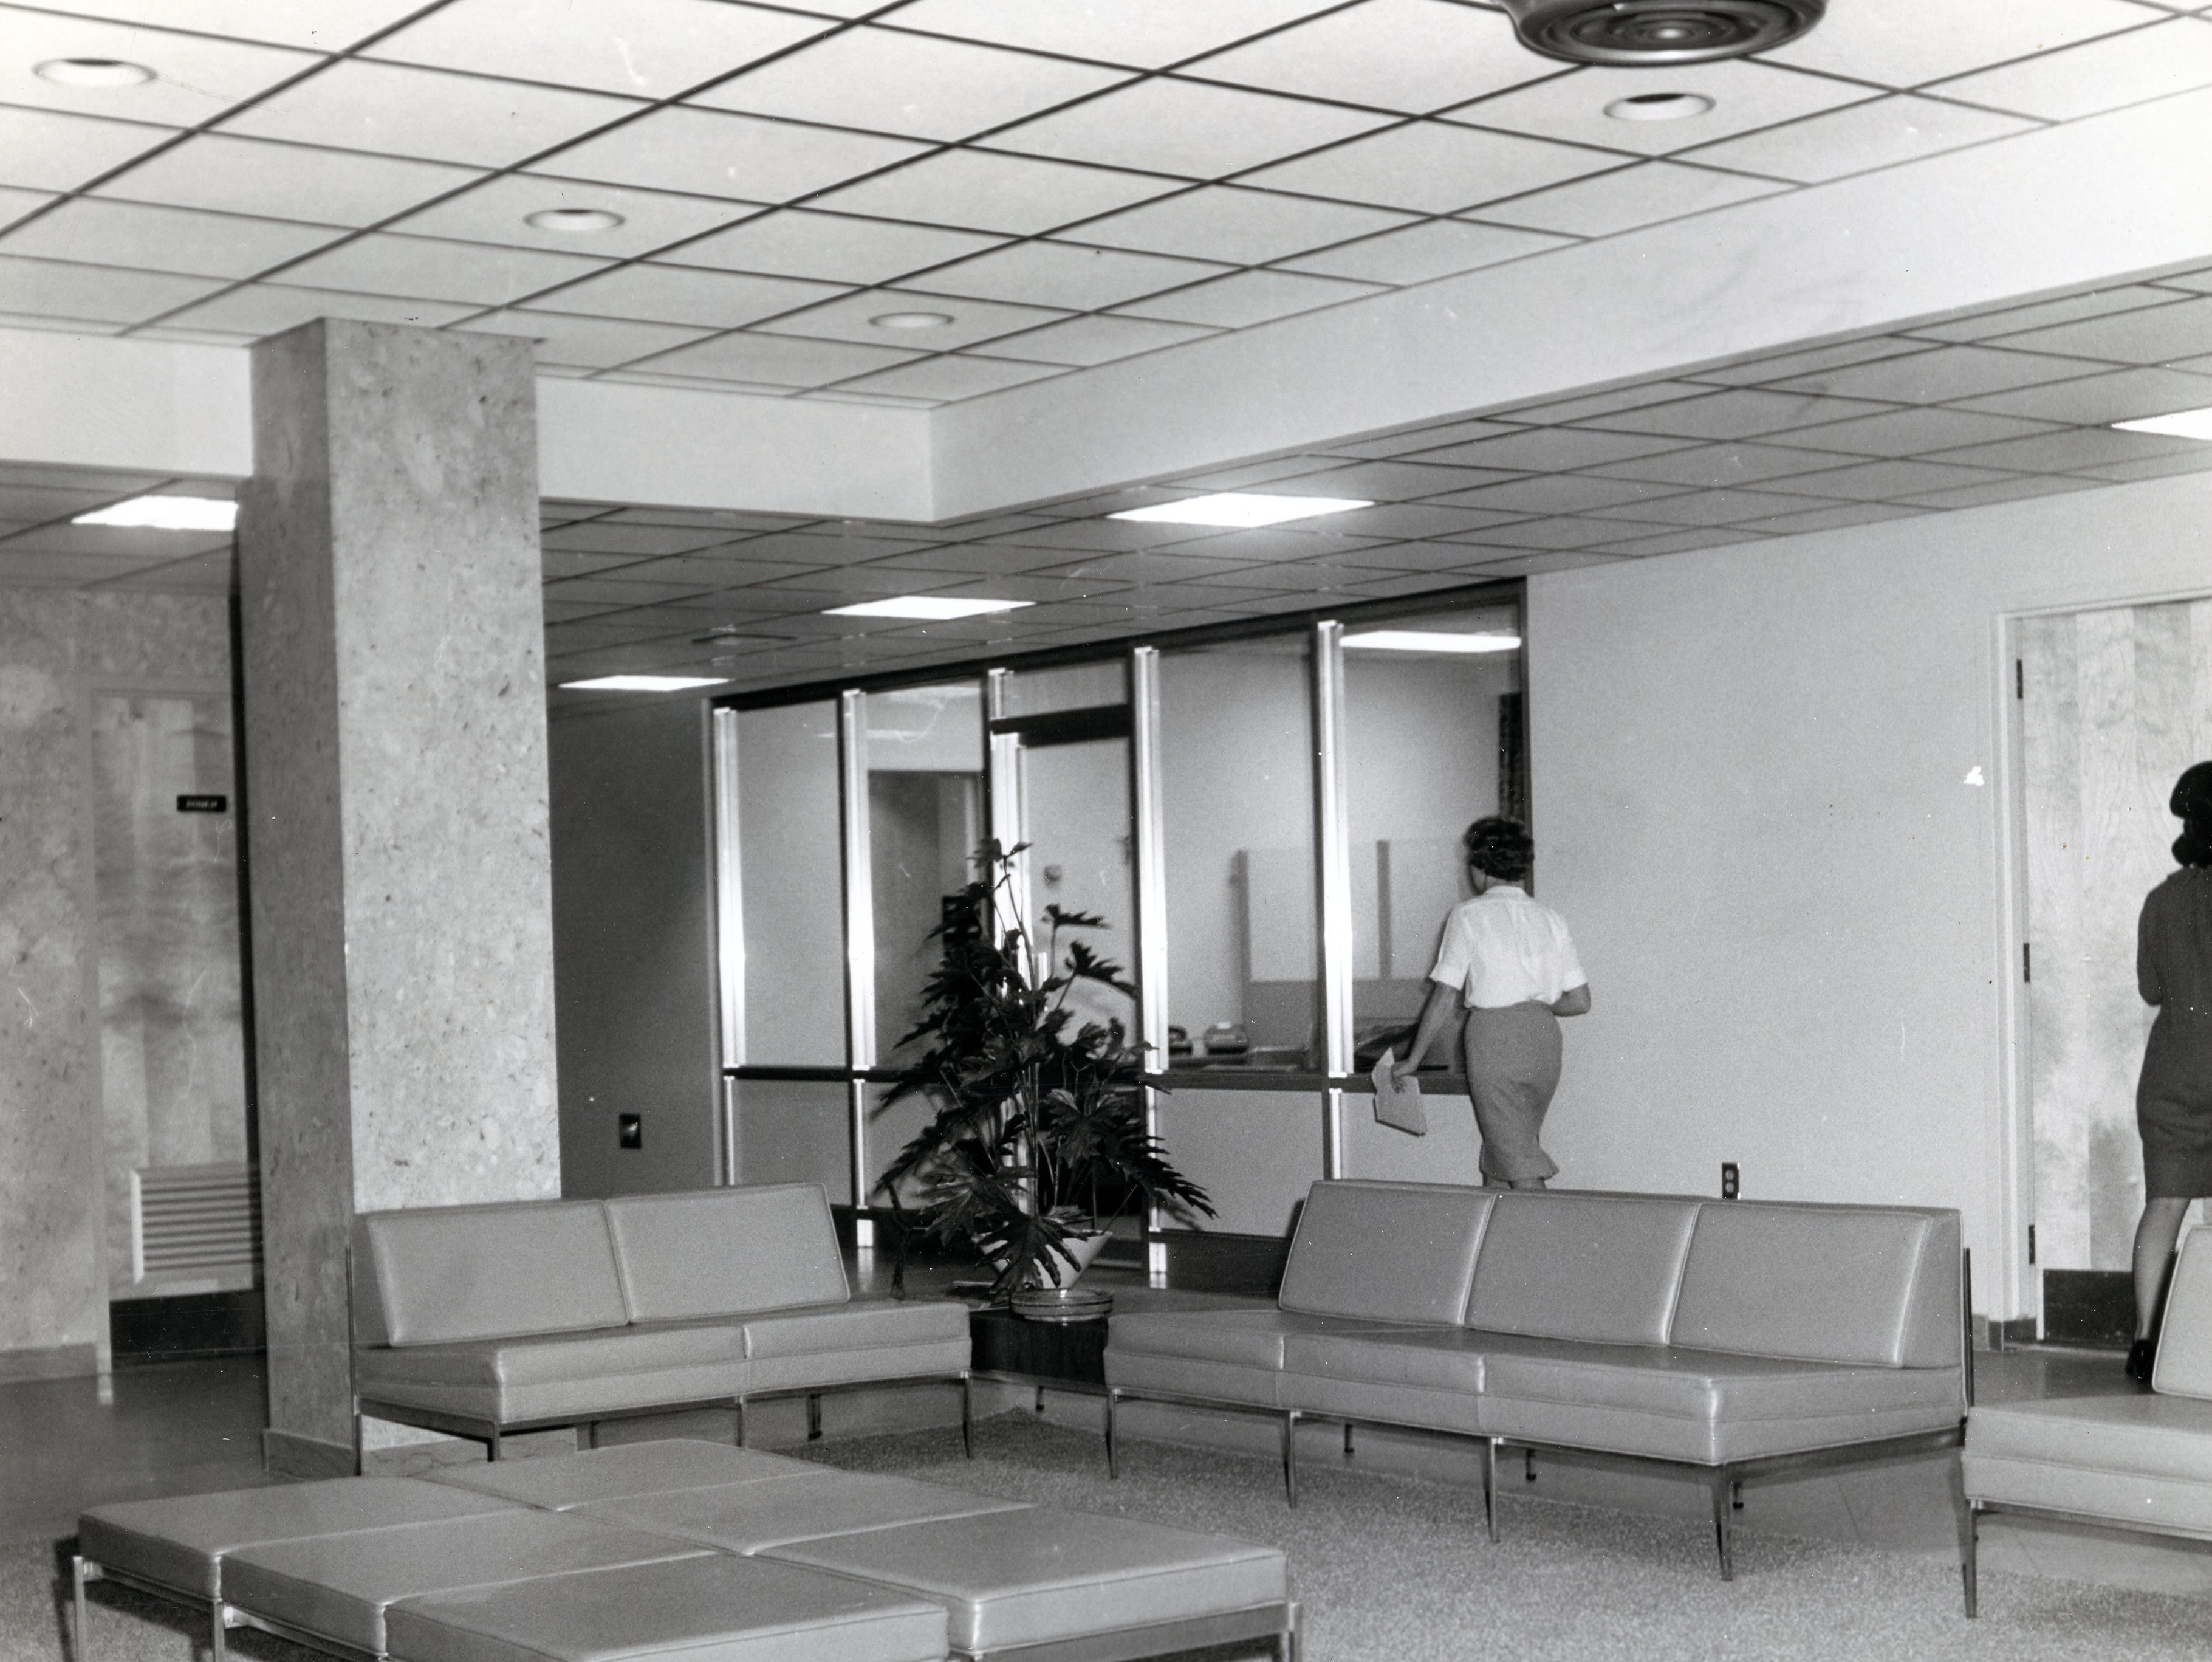 Inside the Annunciation Wing of St. Mary's Hospital in March 1966.